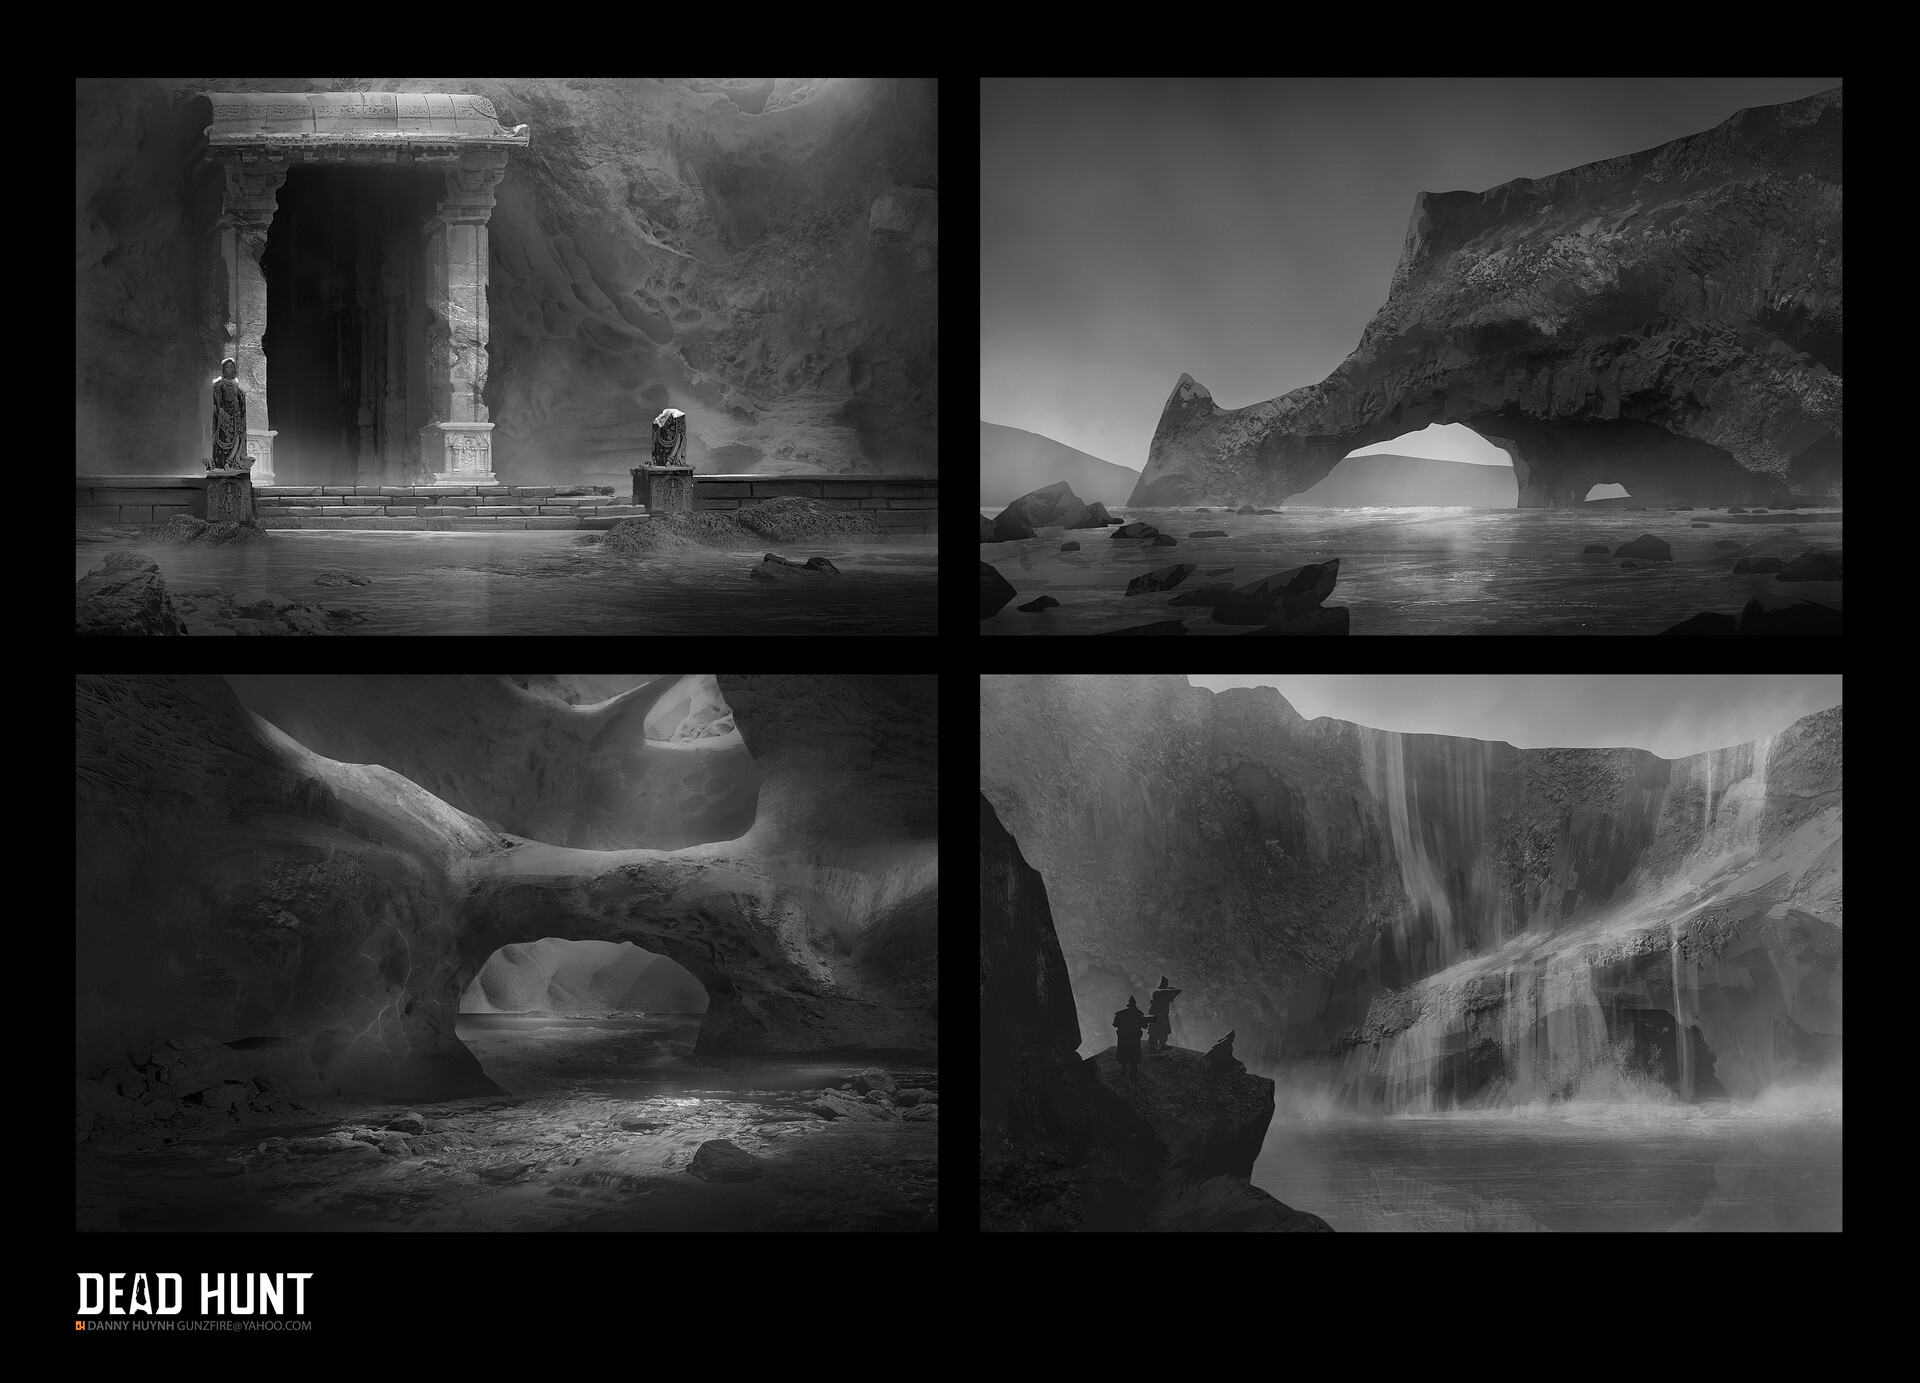 Early inspirational thumbnails to set mood and style of the project.